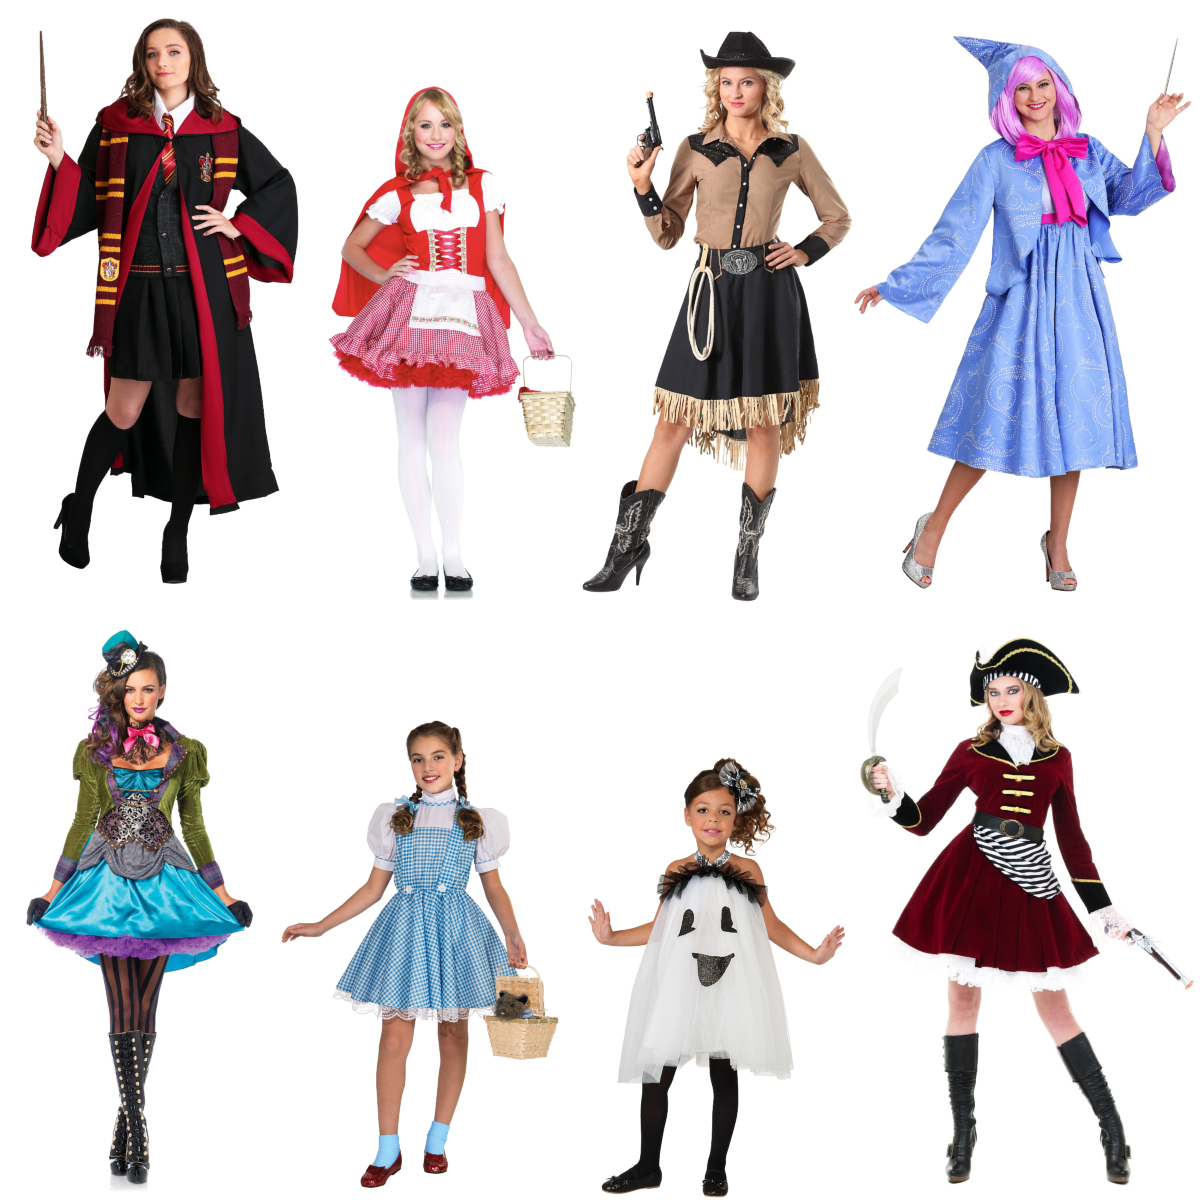 best costumes with skirts to dance in